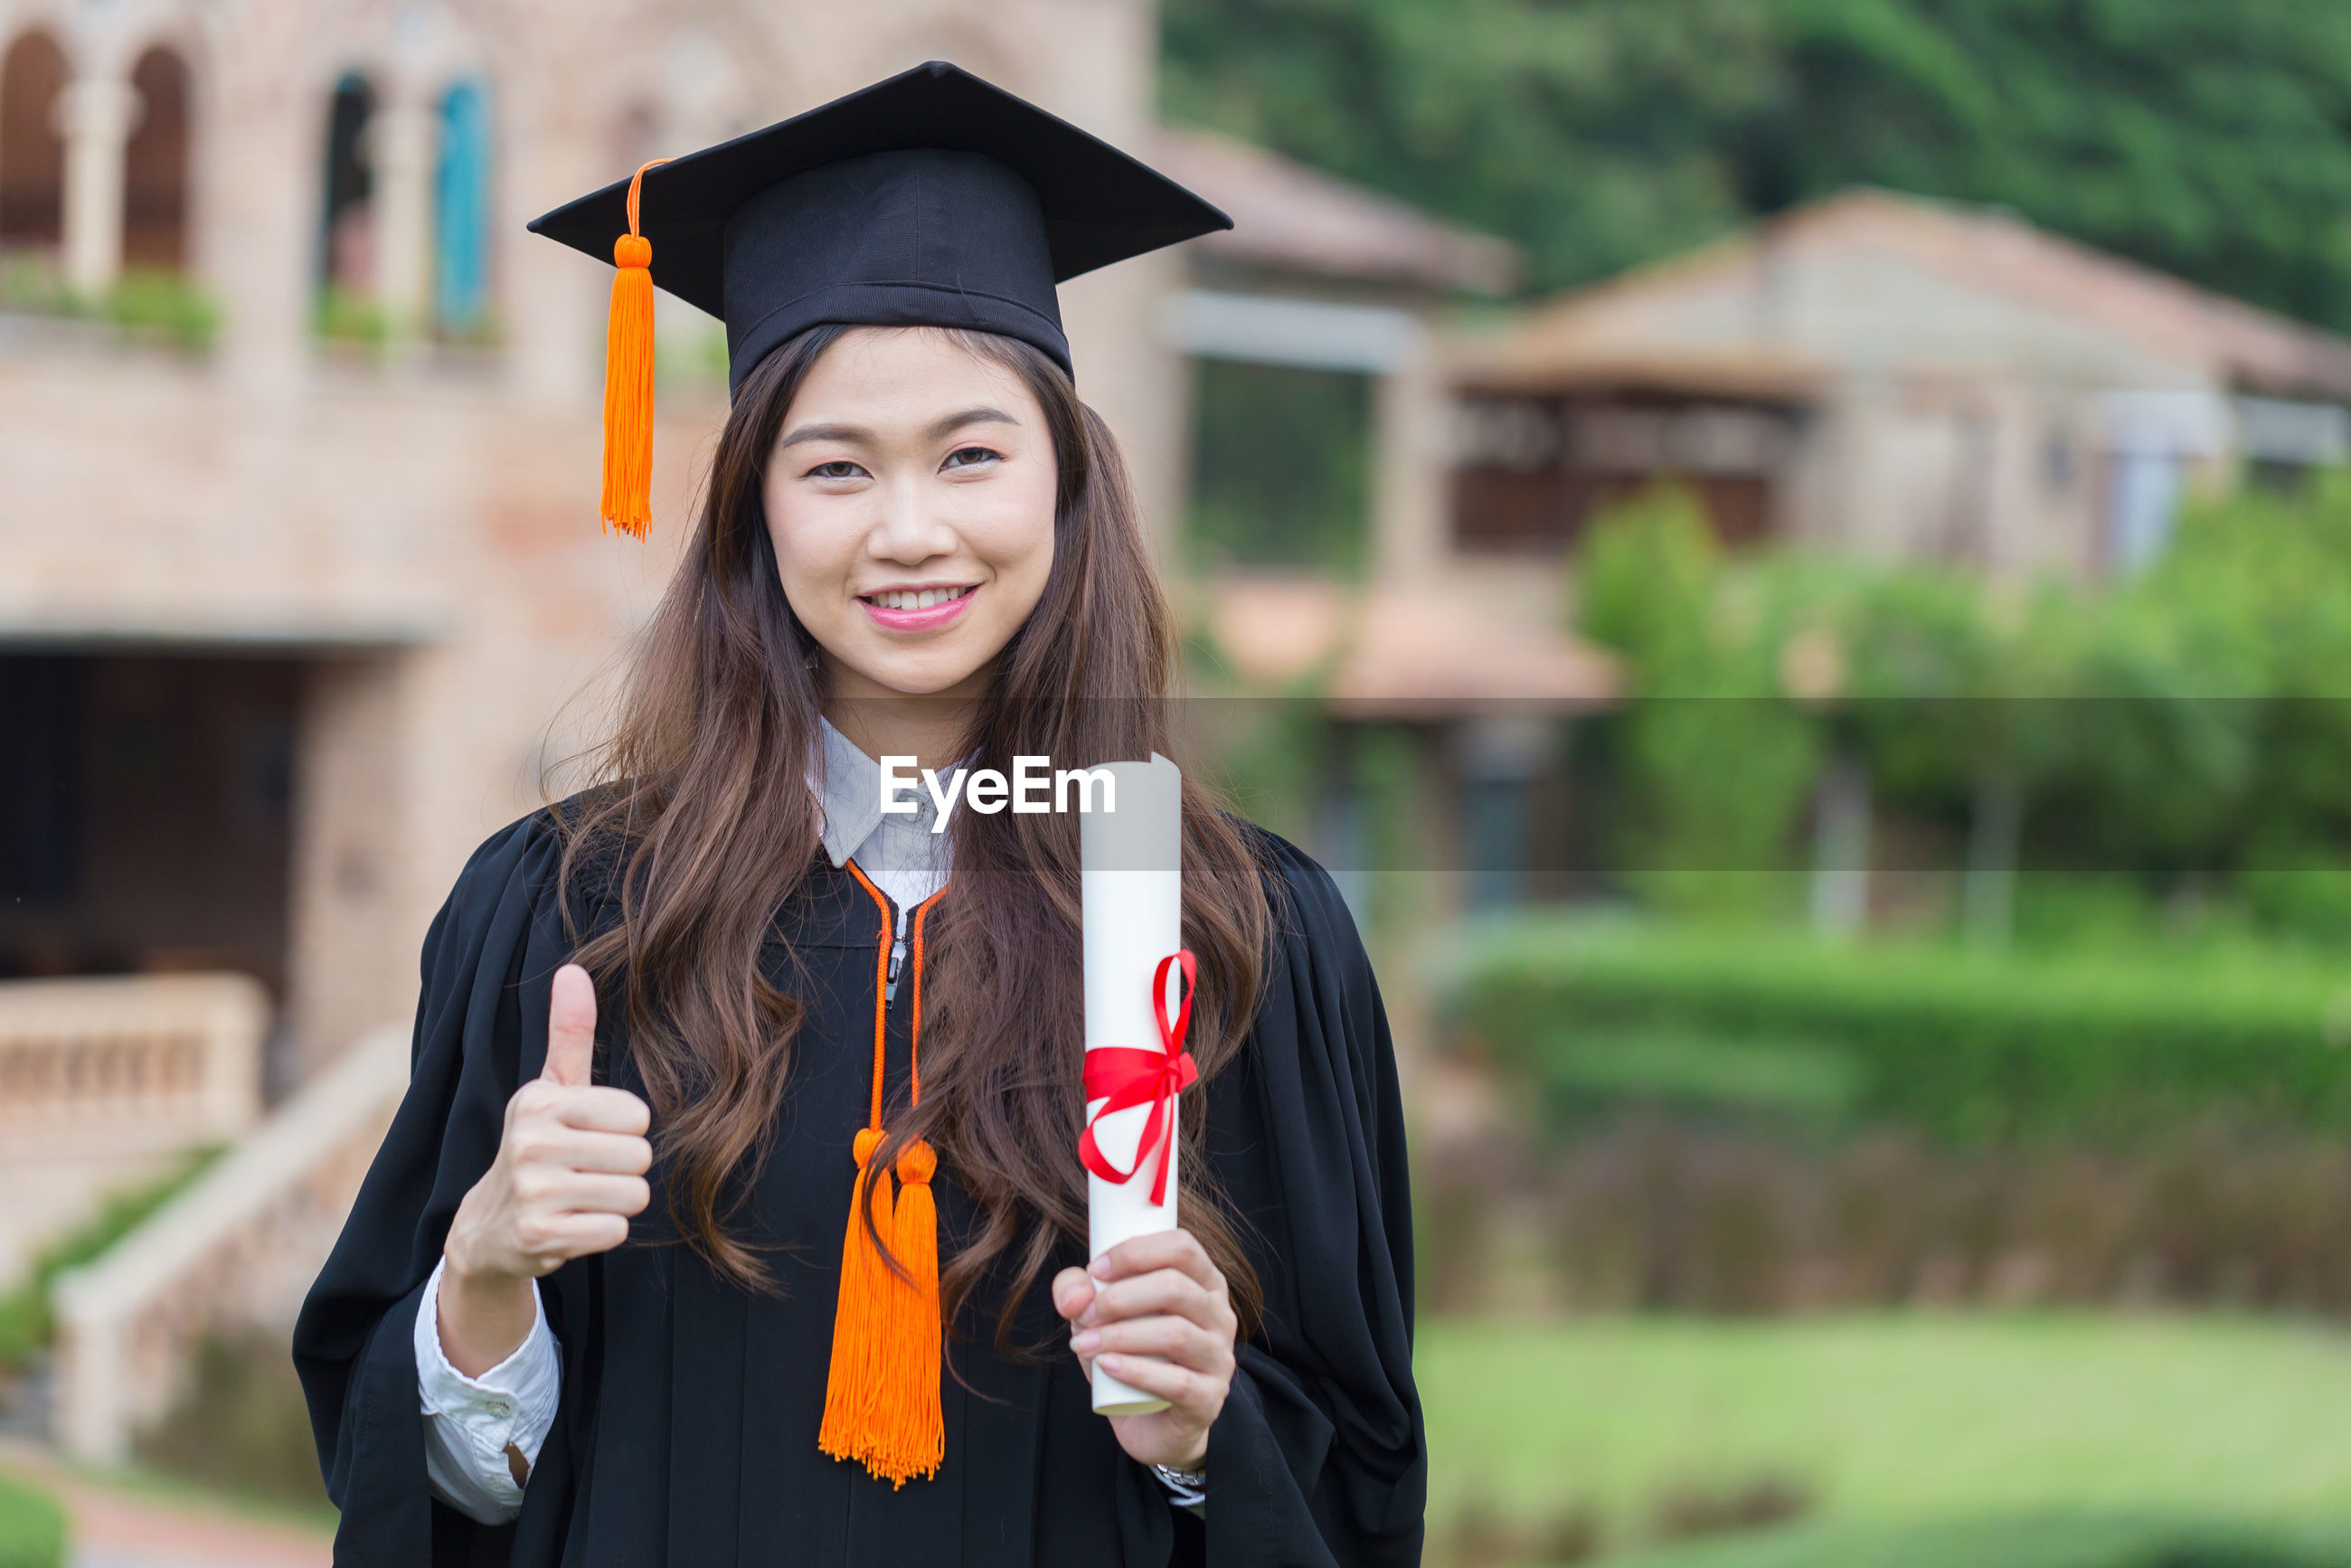 Portrait of young woman wearing graduation gown holding paper while standing outdoors